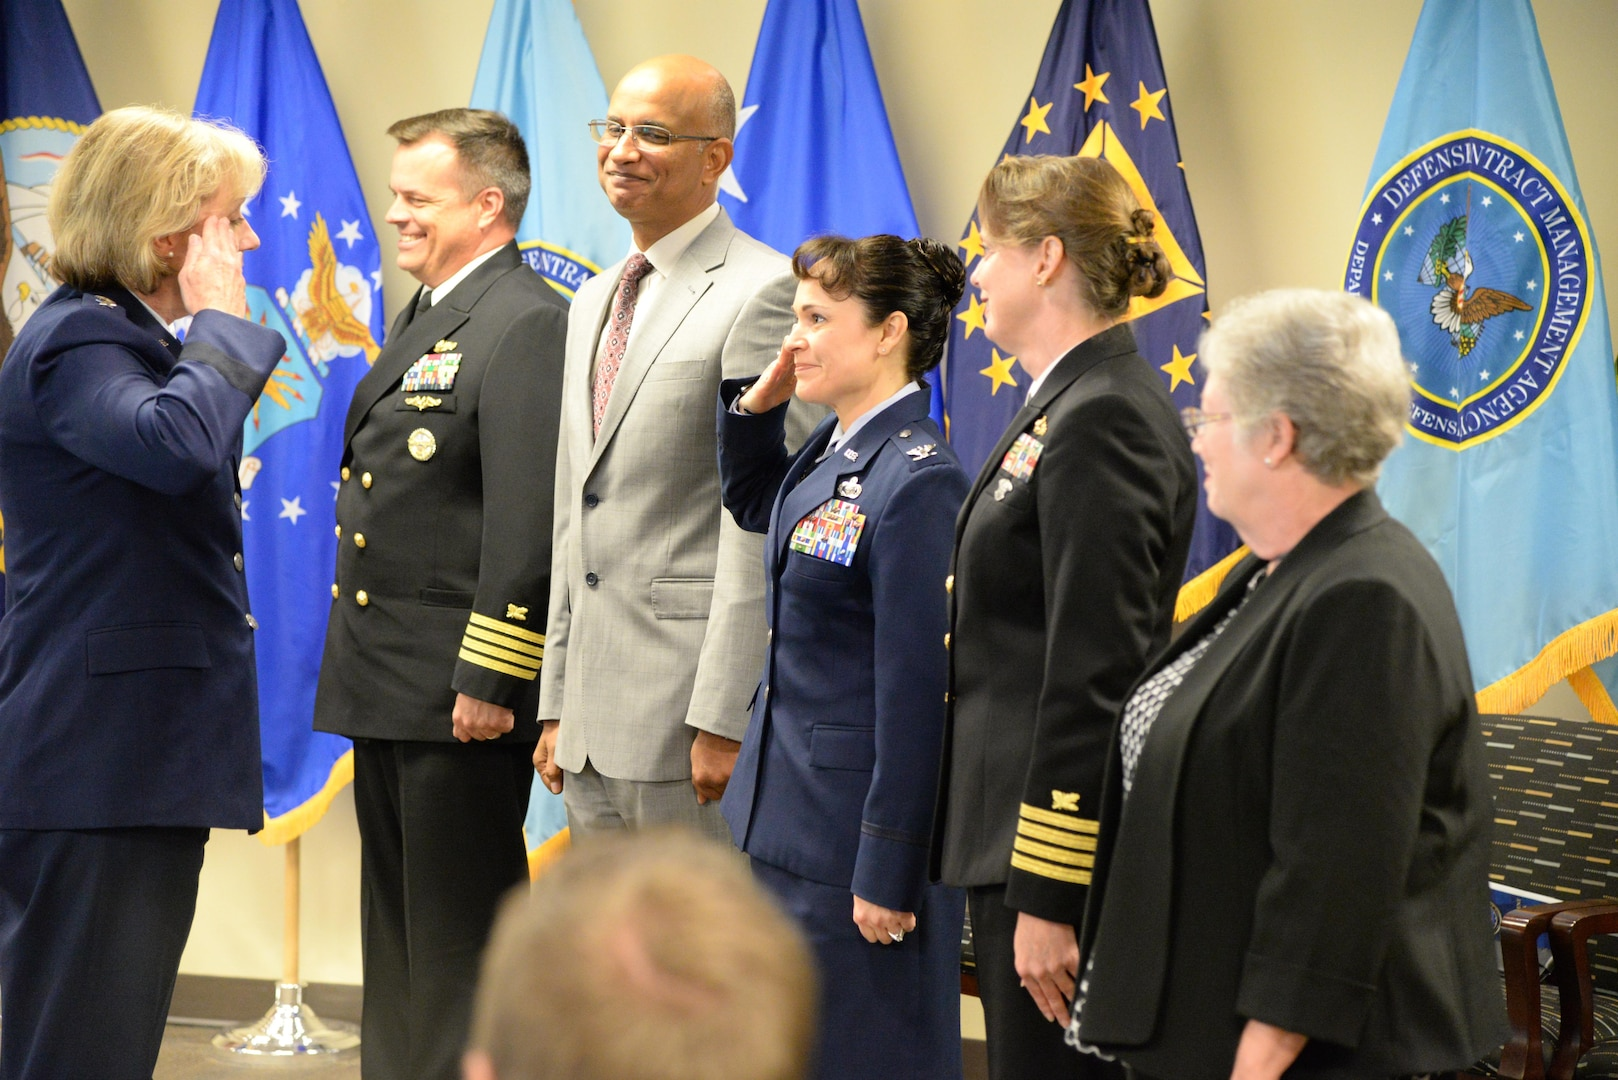 Air Force Lt. Gen. Wendy Masiello, Defense Contract Management Agency director, salutes the agency's regional commanders signaling the start of their new roles as operational unit leaders for their regions. The group assembled for a Sept. 22 ceremony at Fort Lee, Virginia, to mark the disestablishment of the agency's Operations Directorate.